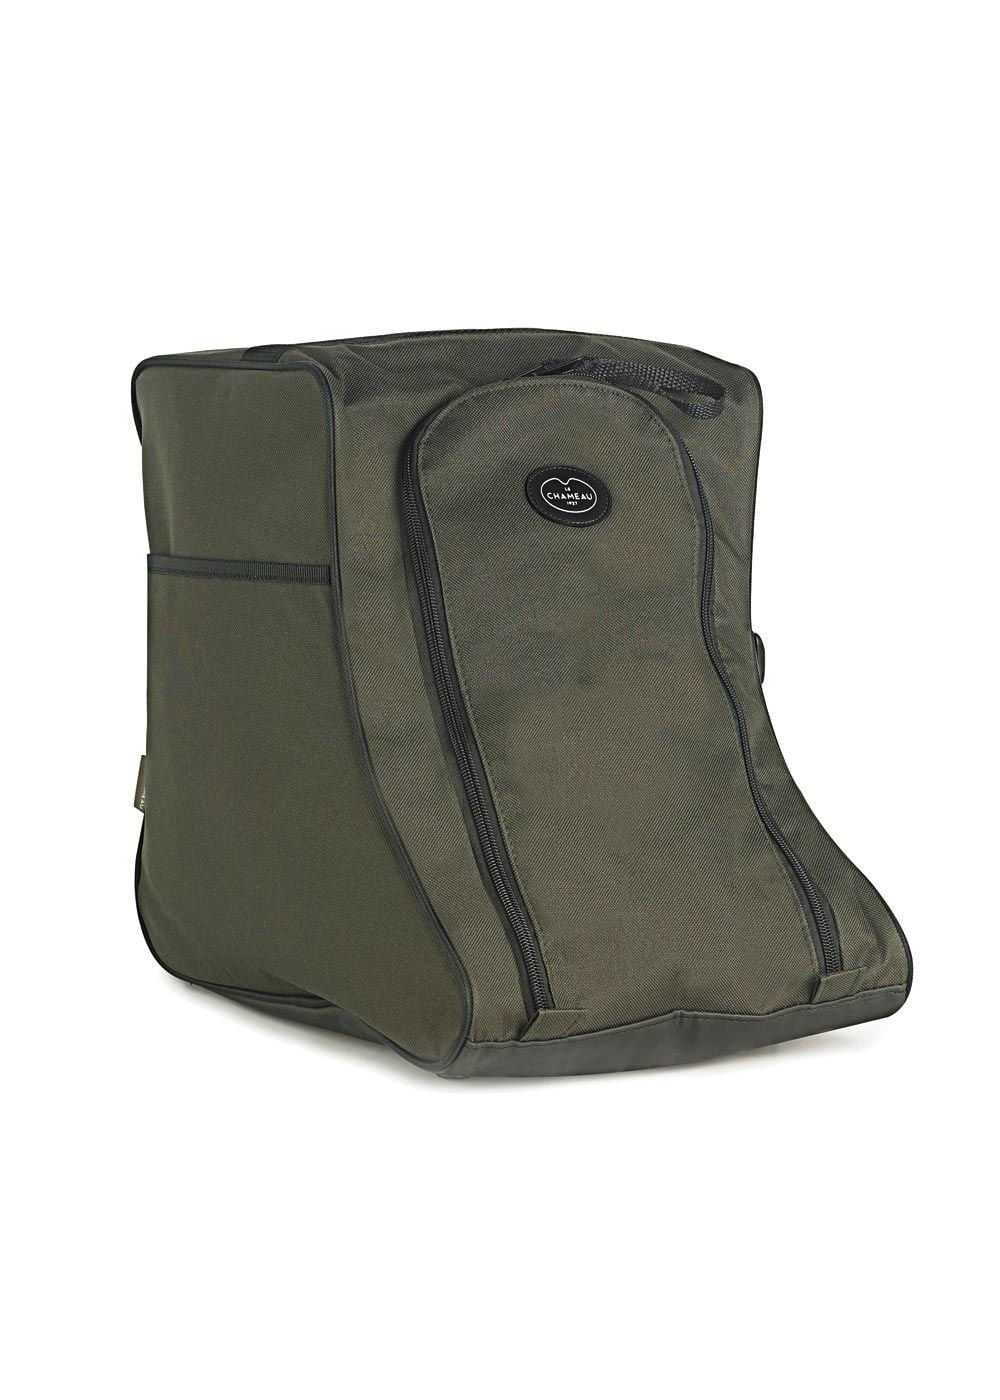 Le Chameau Walking Boot Bag Large Image